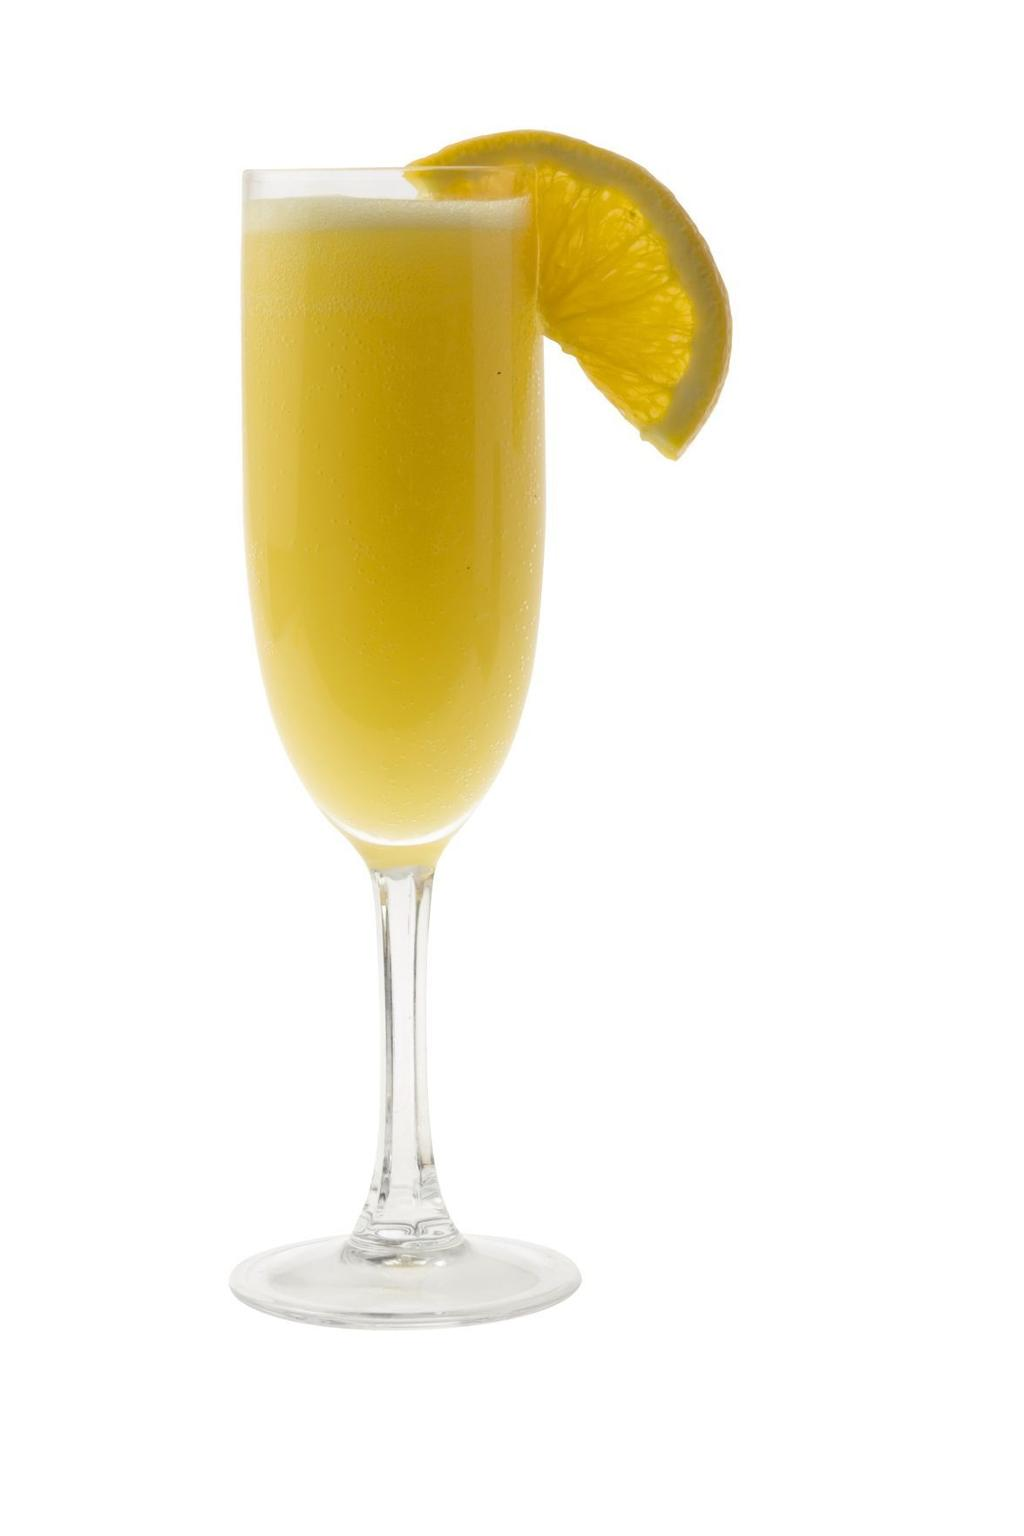 4 Places to celebrate National Mimosa Day | Nightlife